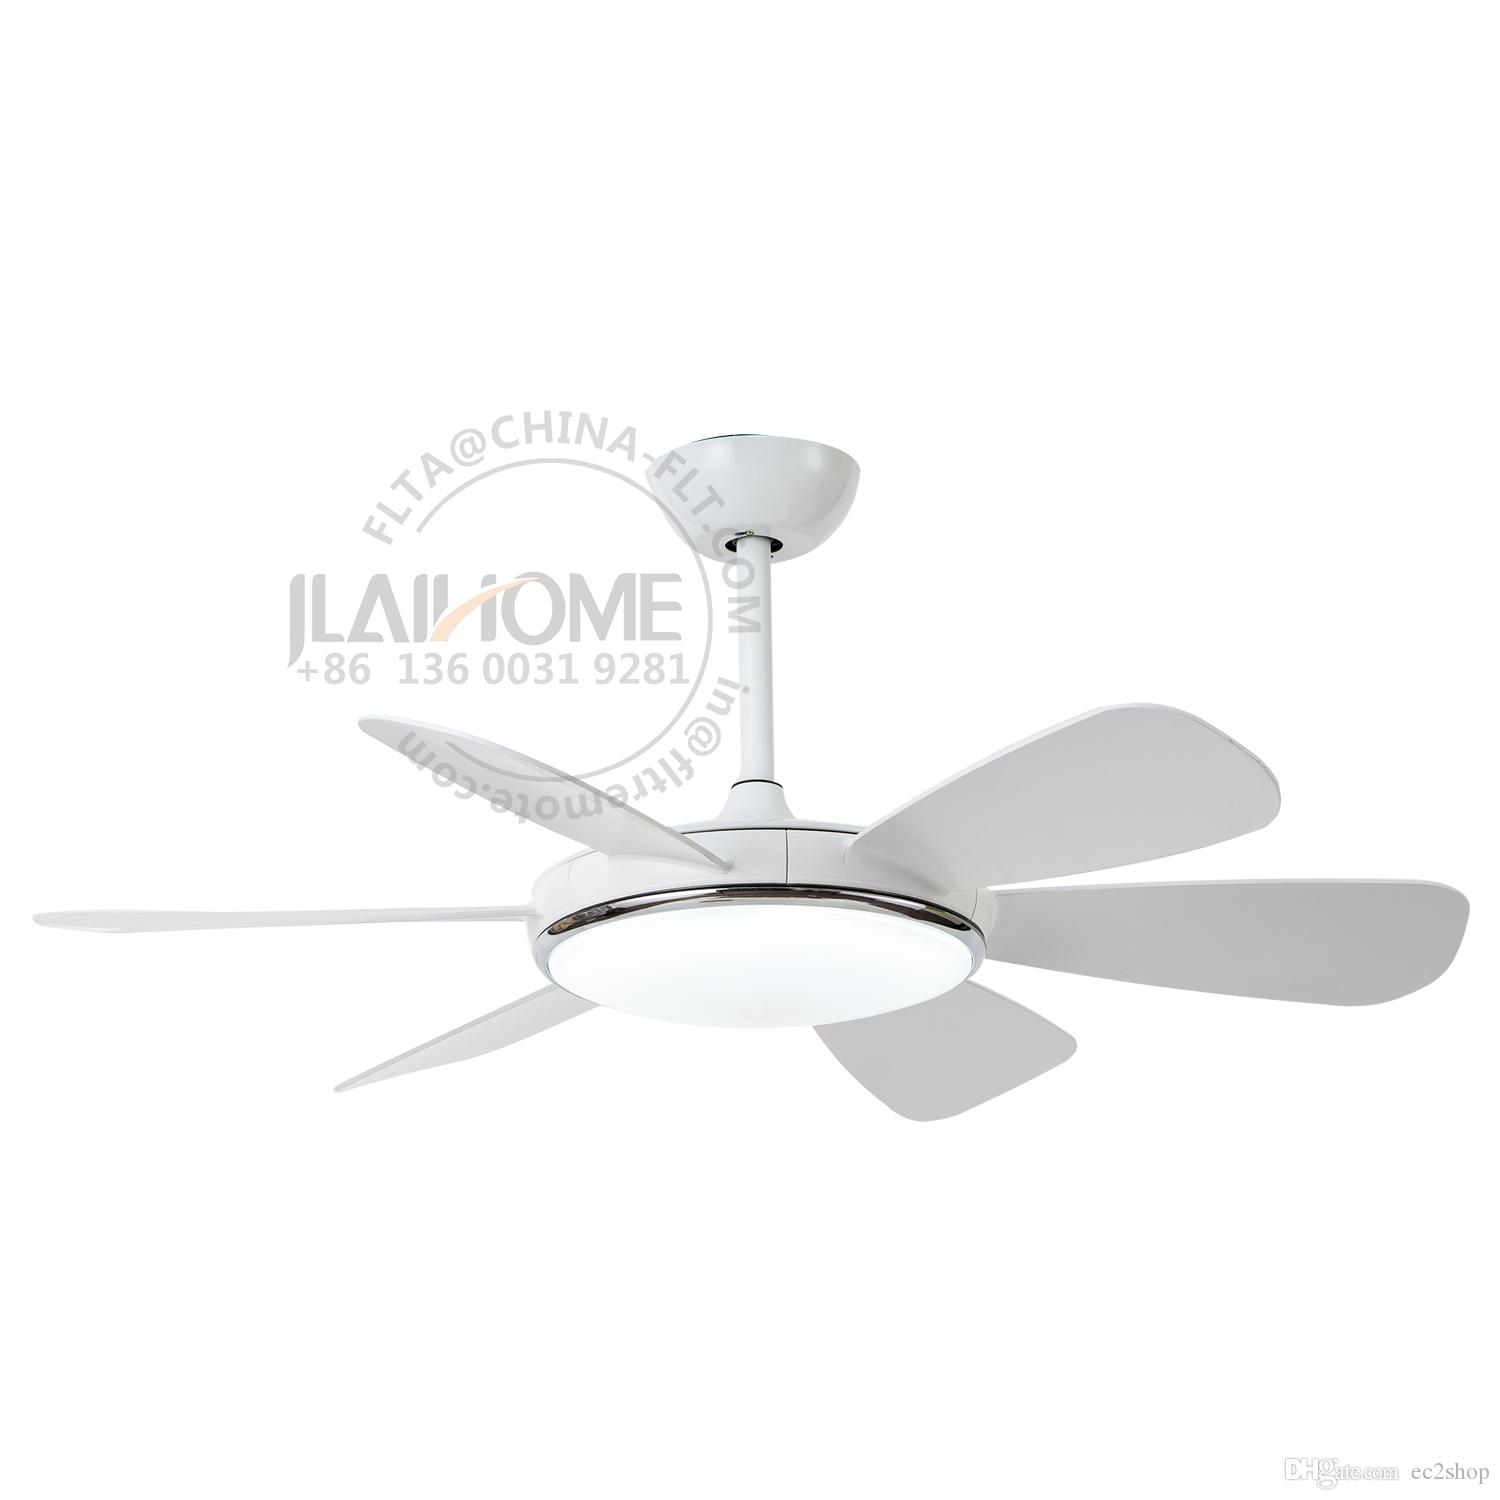 52 Inch White Ceiling Fan With Light And Remote